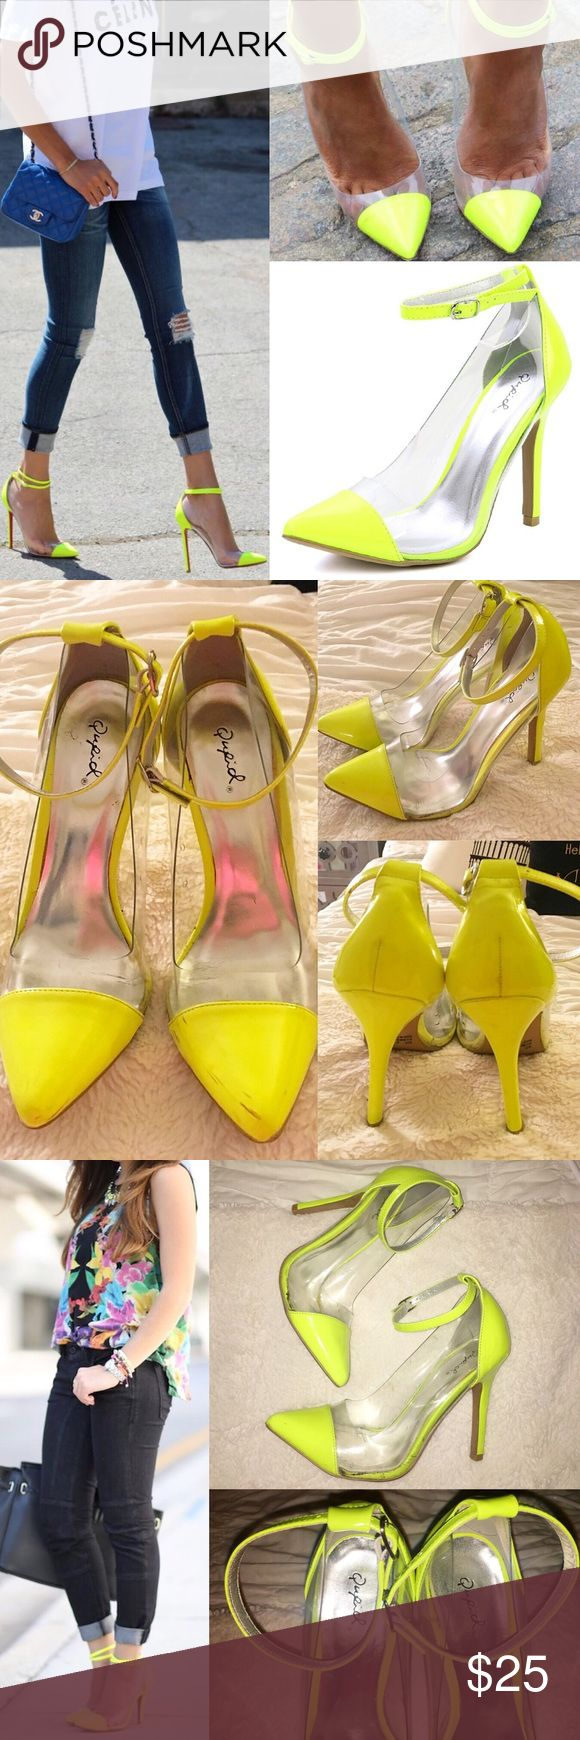 6 9 month yellow dress ith shoes